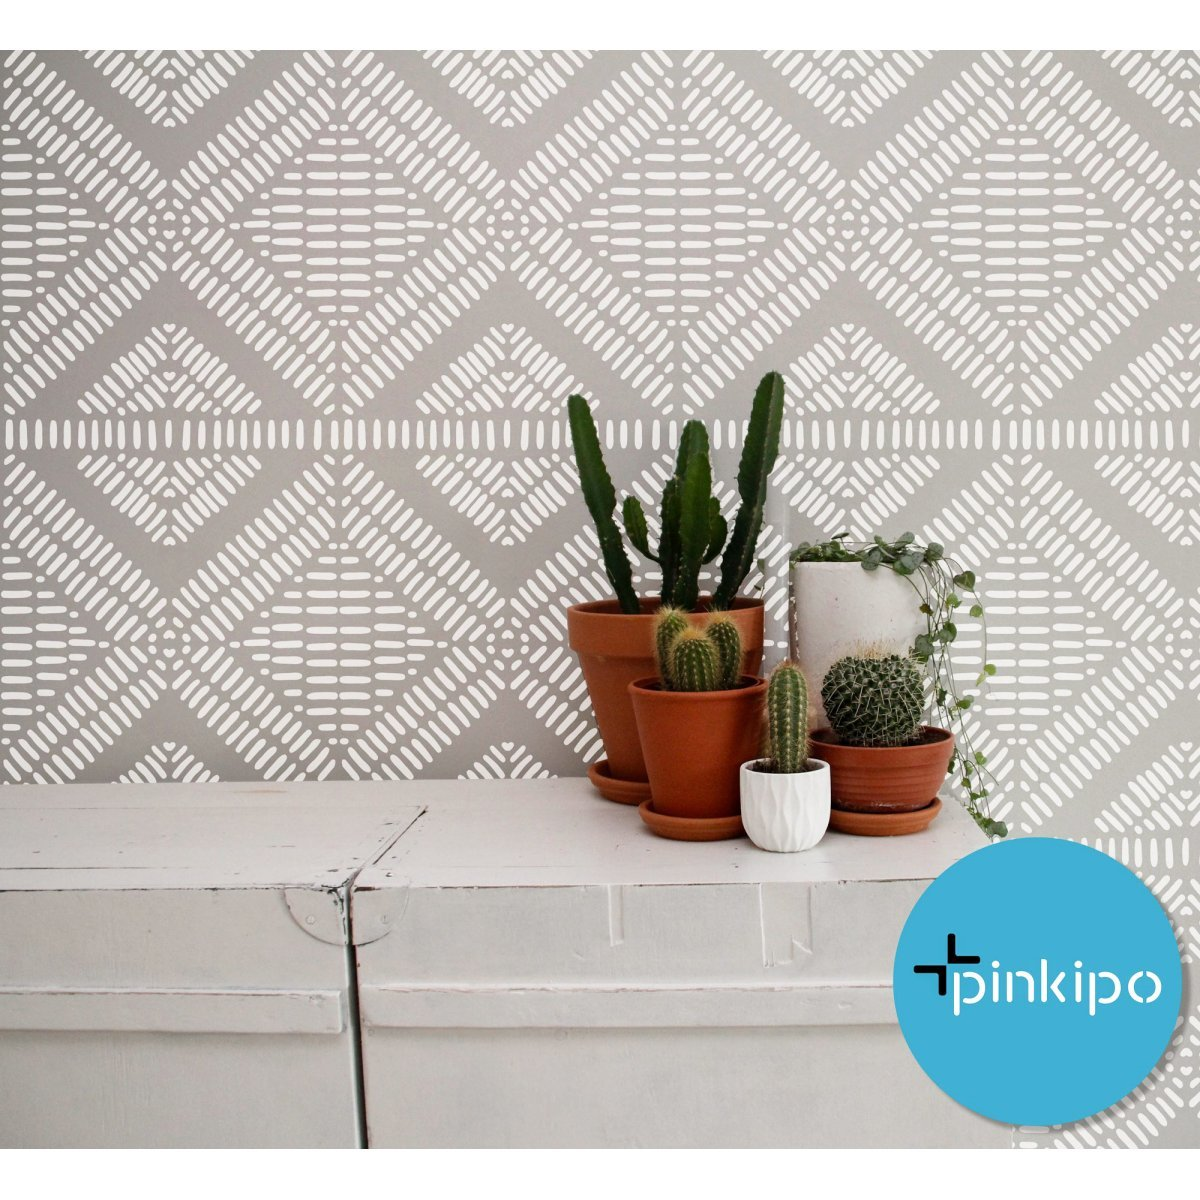 AFRODISIAS / Reusable Allover Large Wall Stencils for Painting